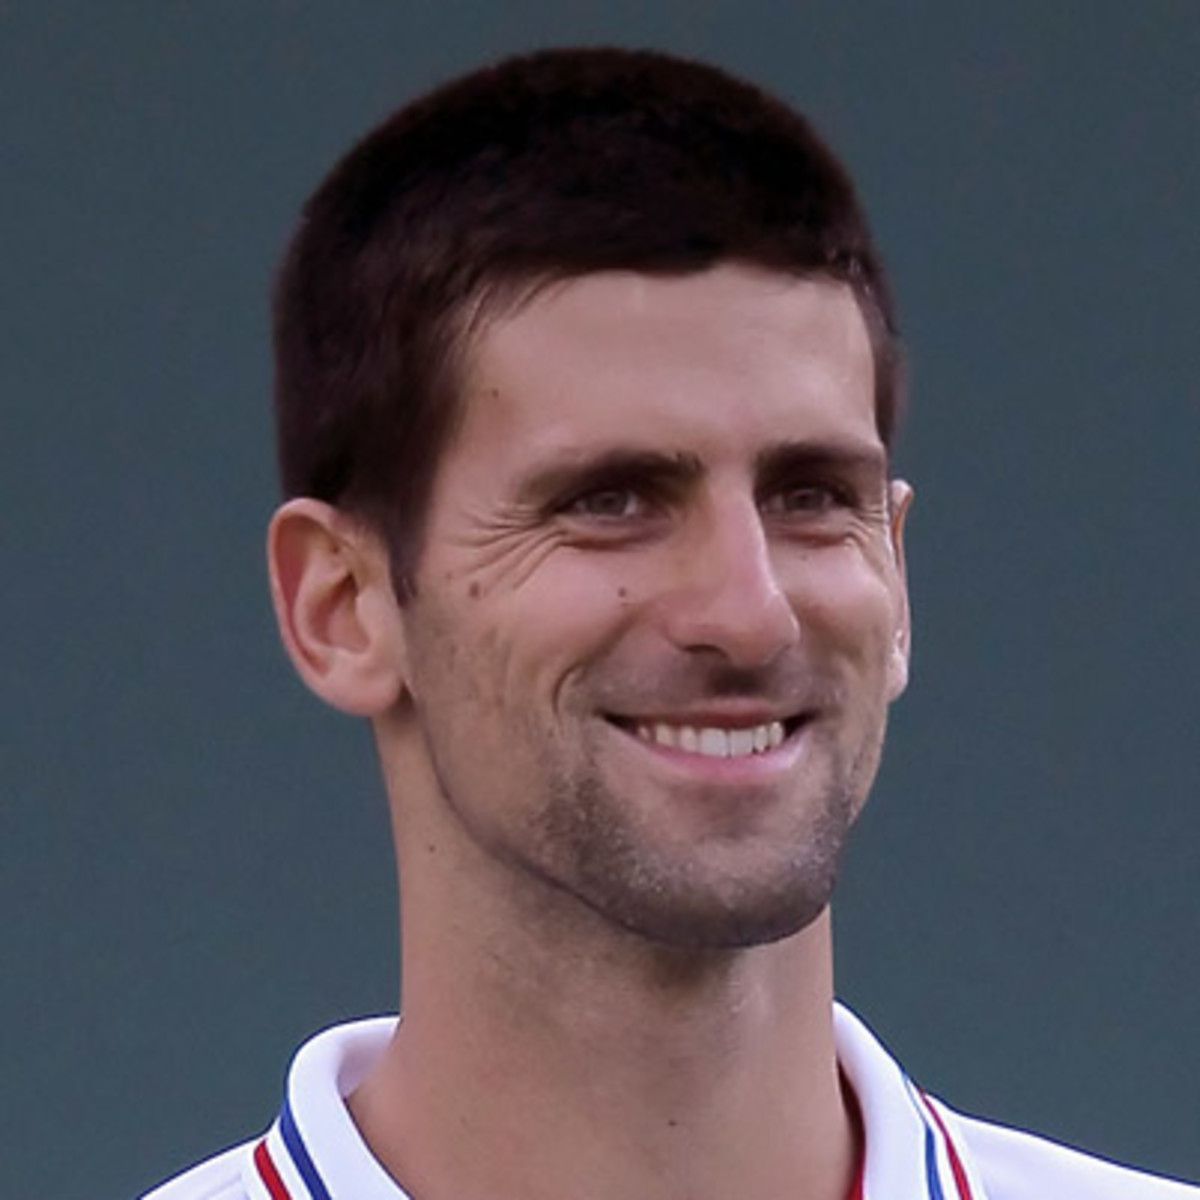 Novak Djokovic Tennis Player Biography